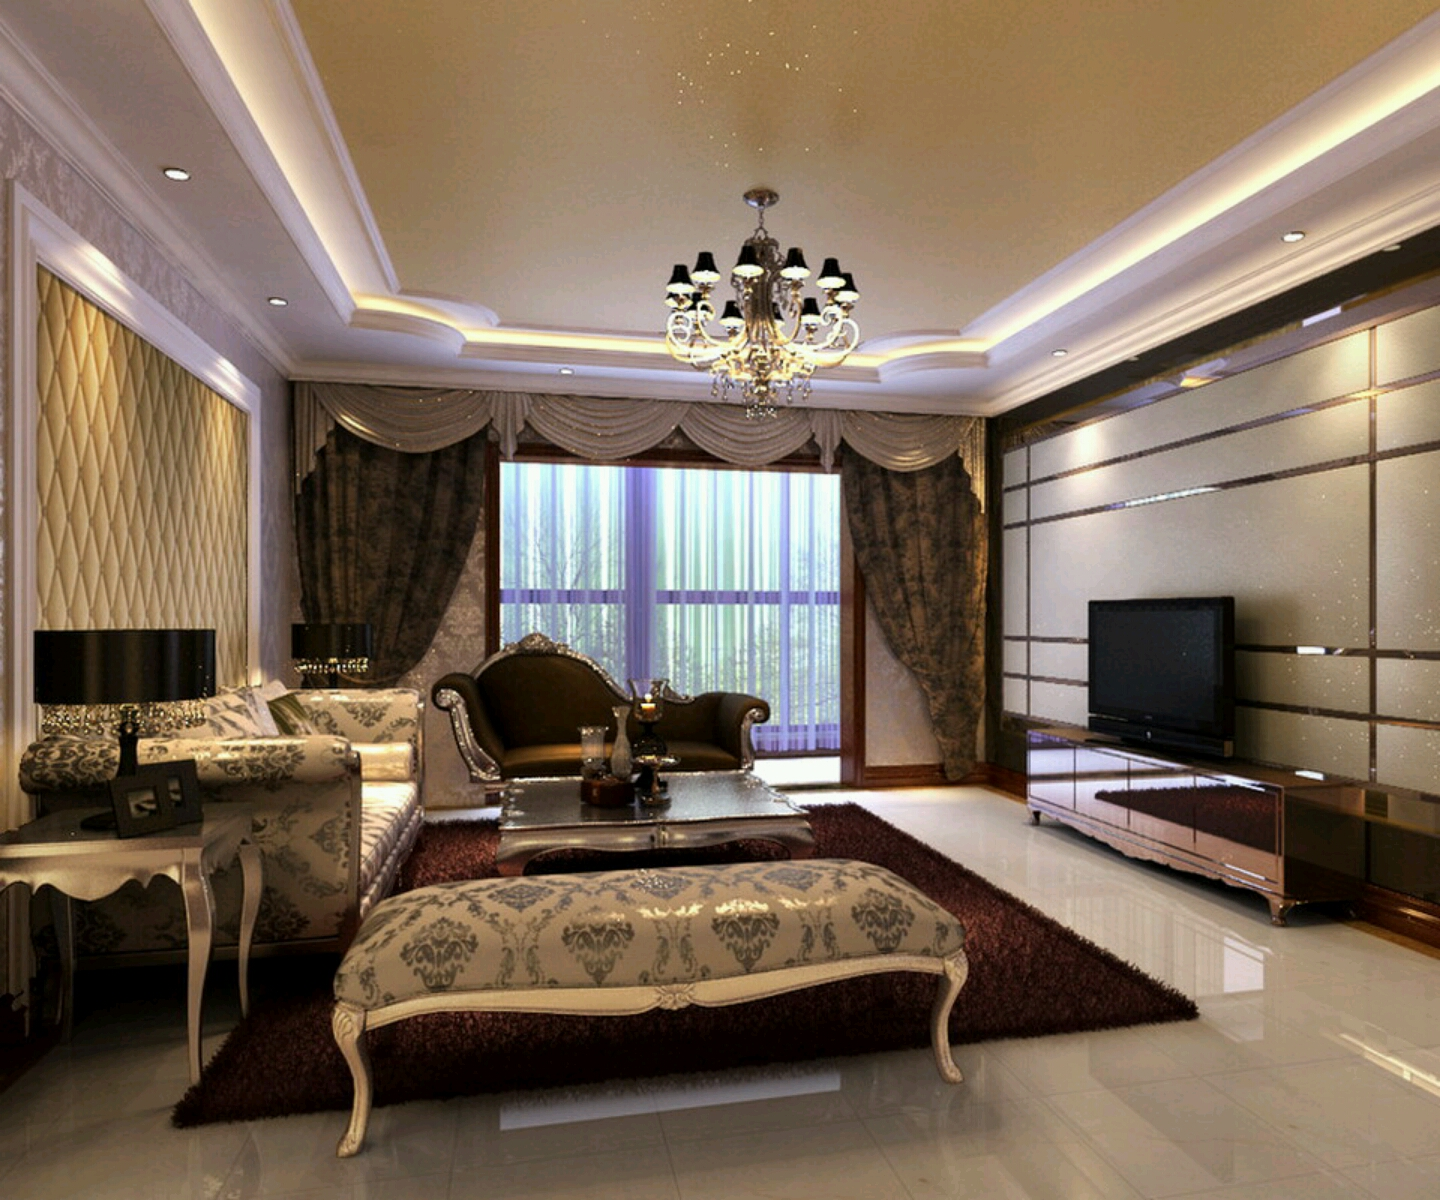 new home designs latest luxury homes interior decoration dream living room interior design best house design ideas